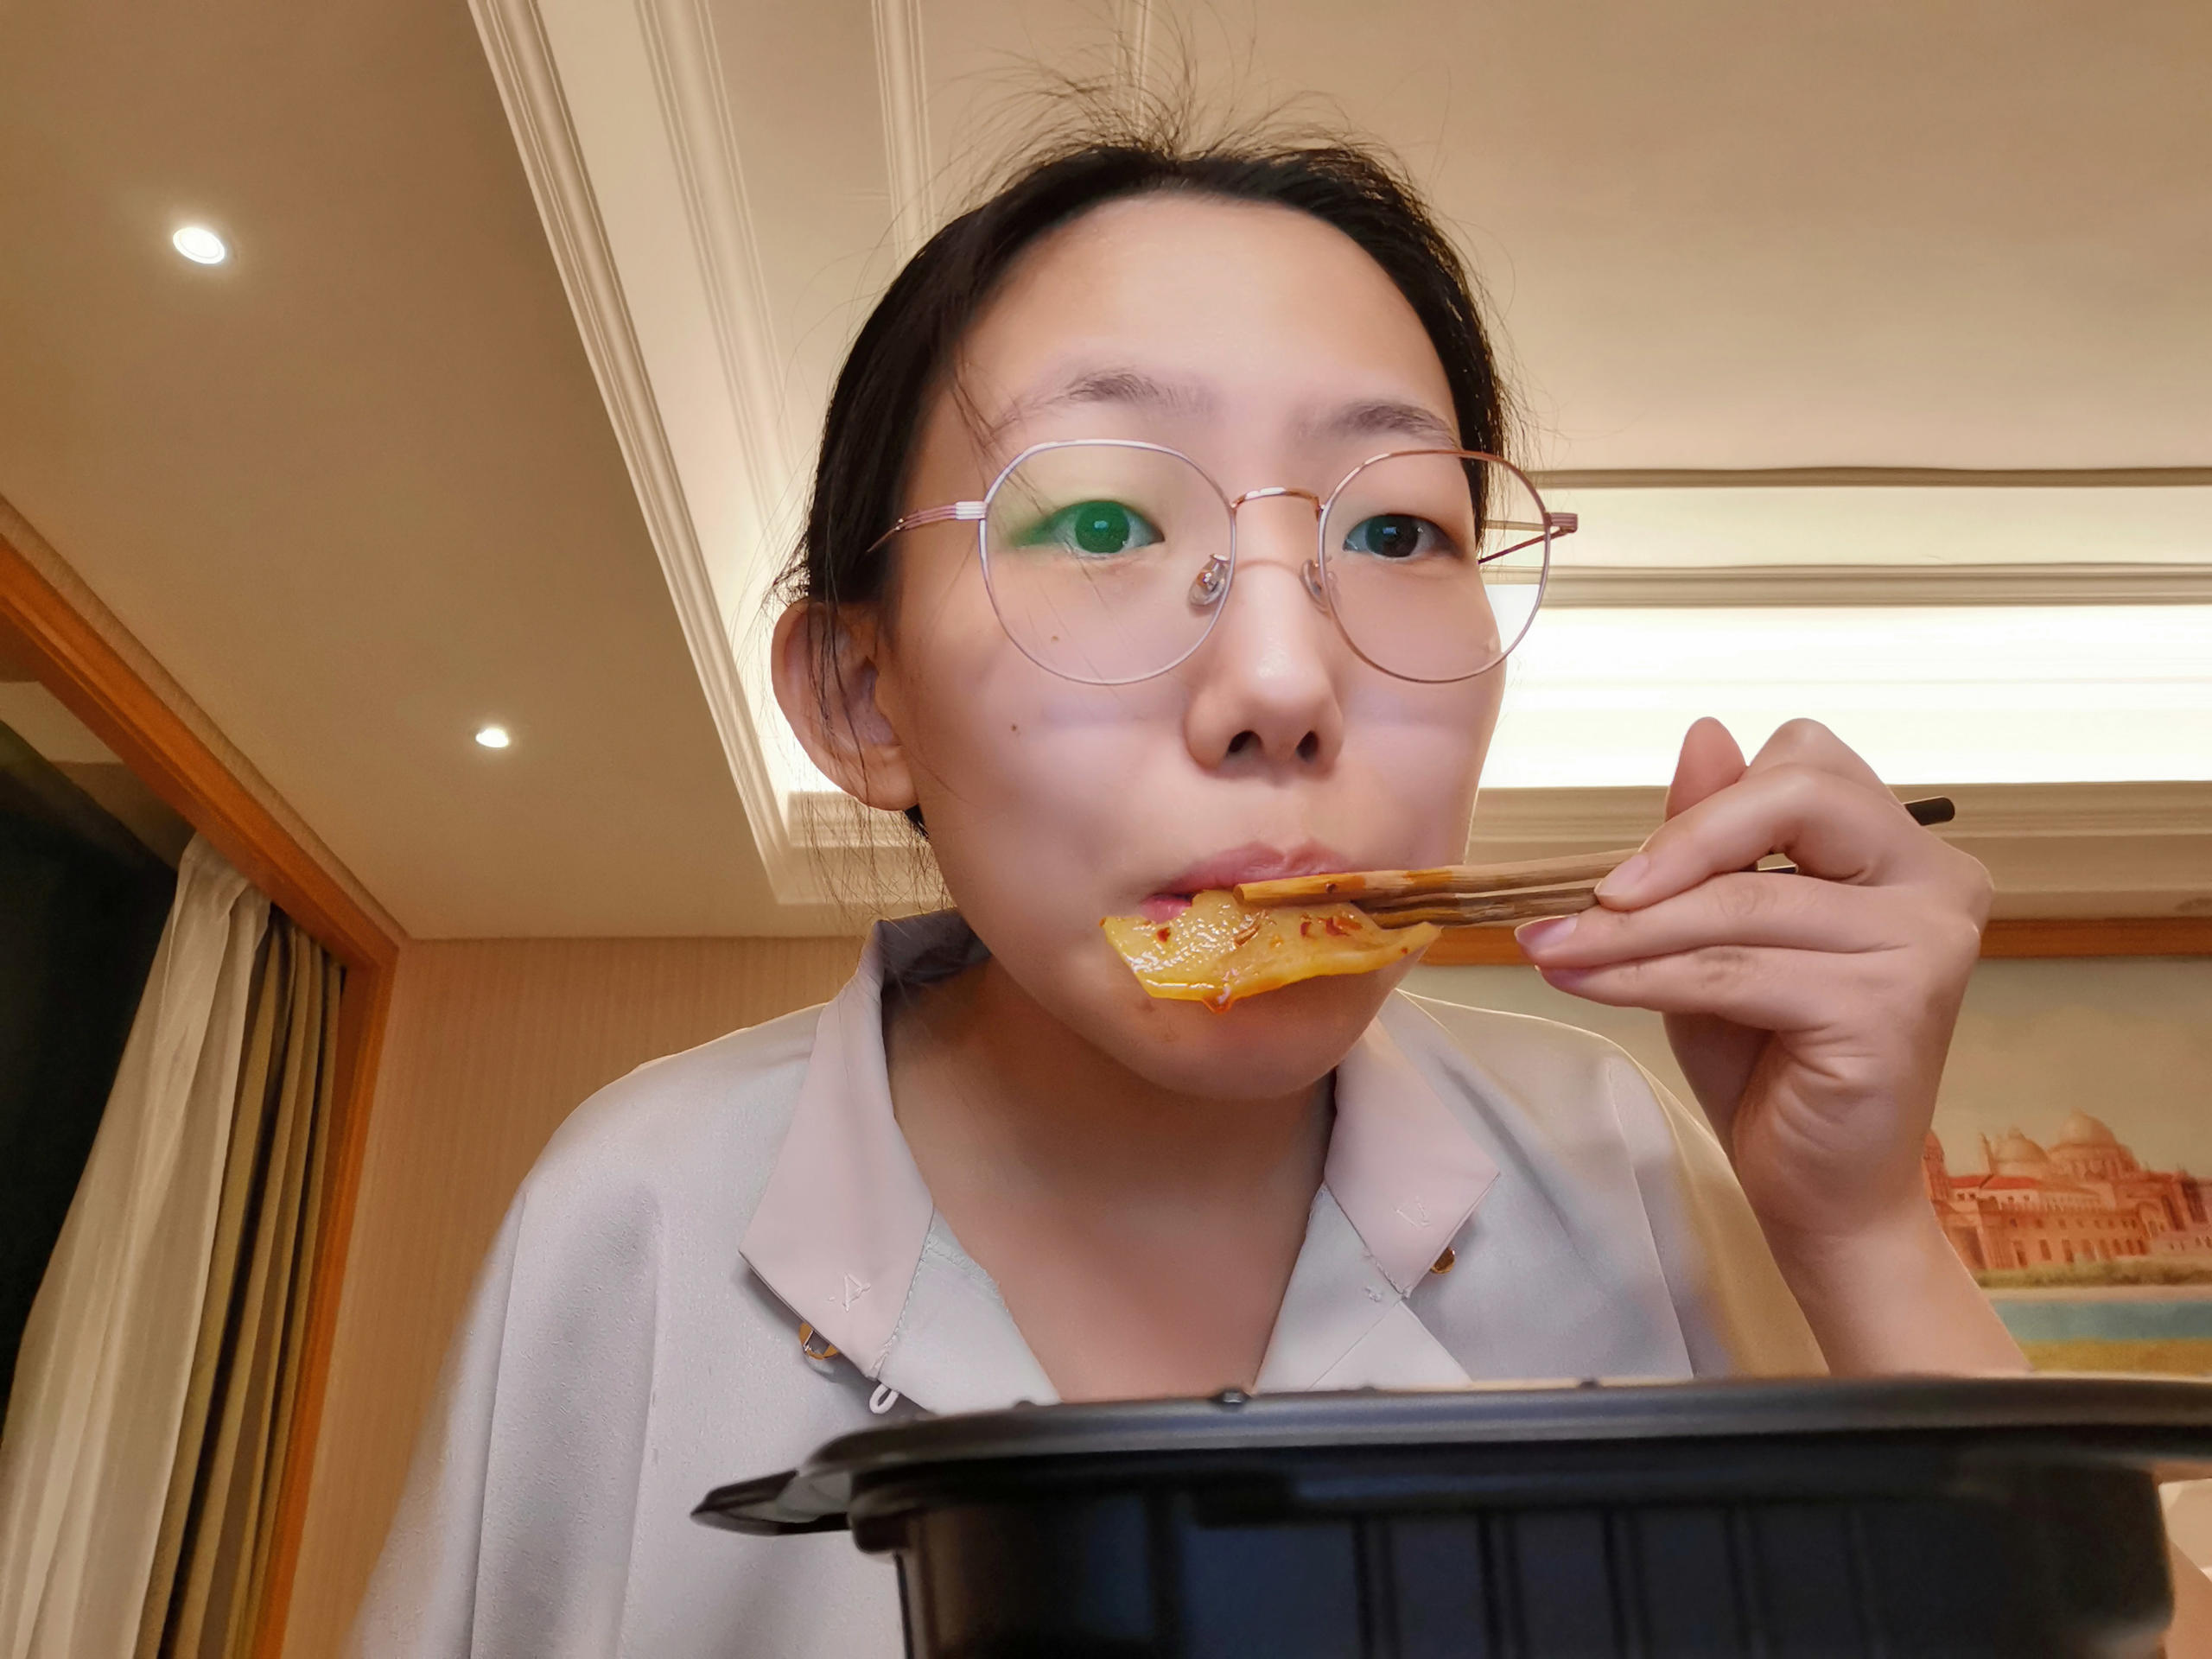 Zifeng juggled study, online classes, and assignments while quarantined. When she studied late at night, Zifeng liked to order via the hotel's WeChat app a hot-pot to snack on. Image credit: Zifeng Zhang